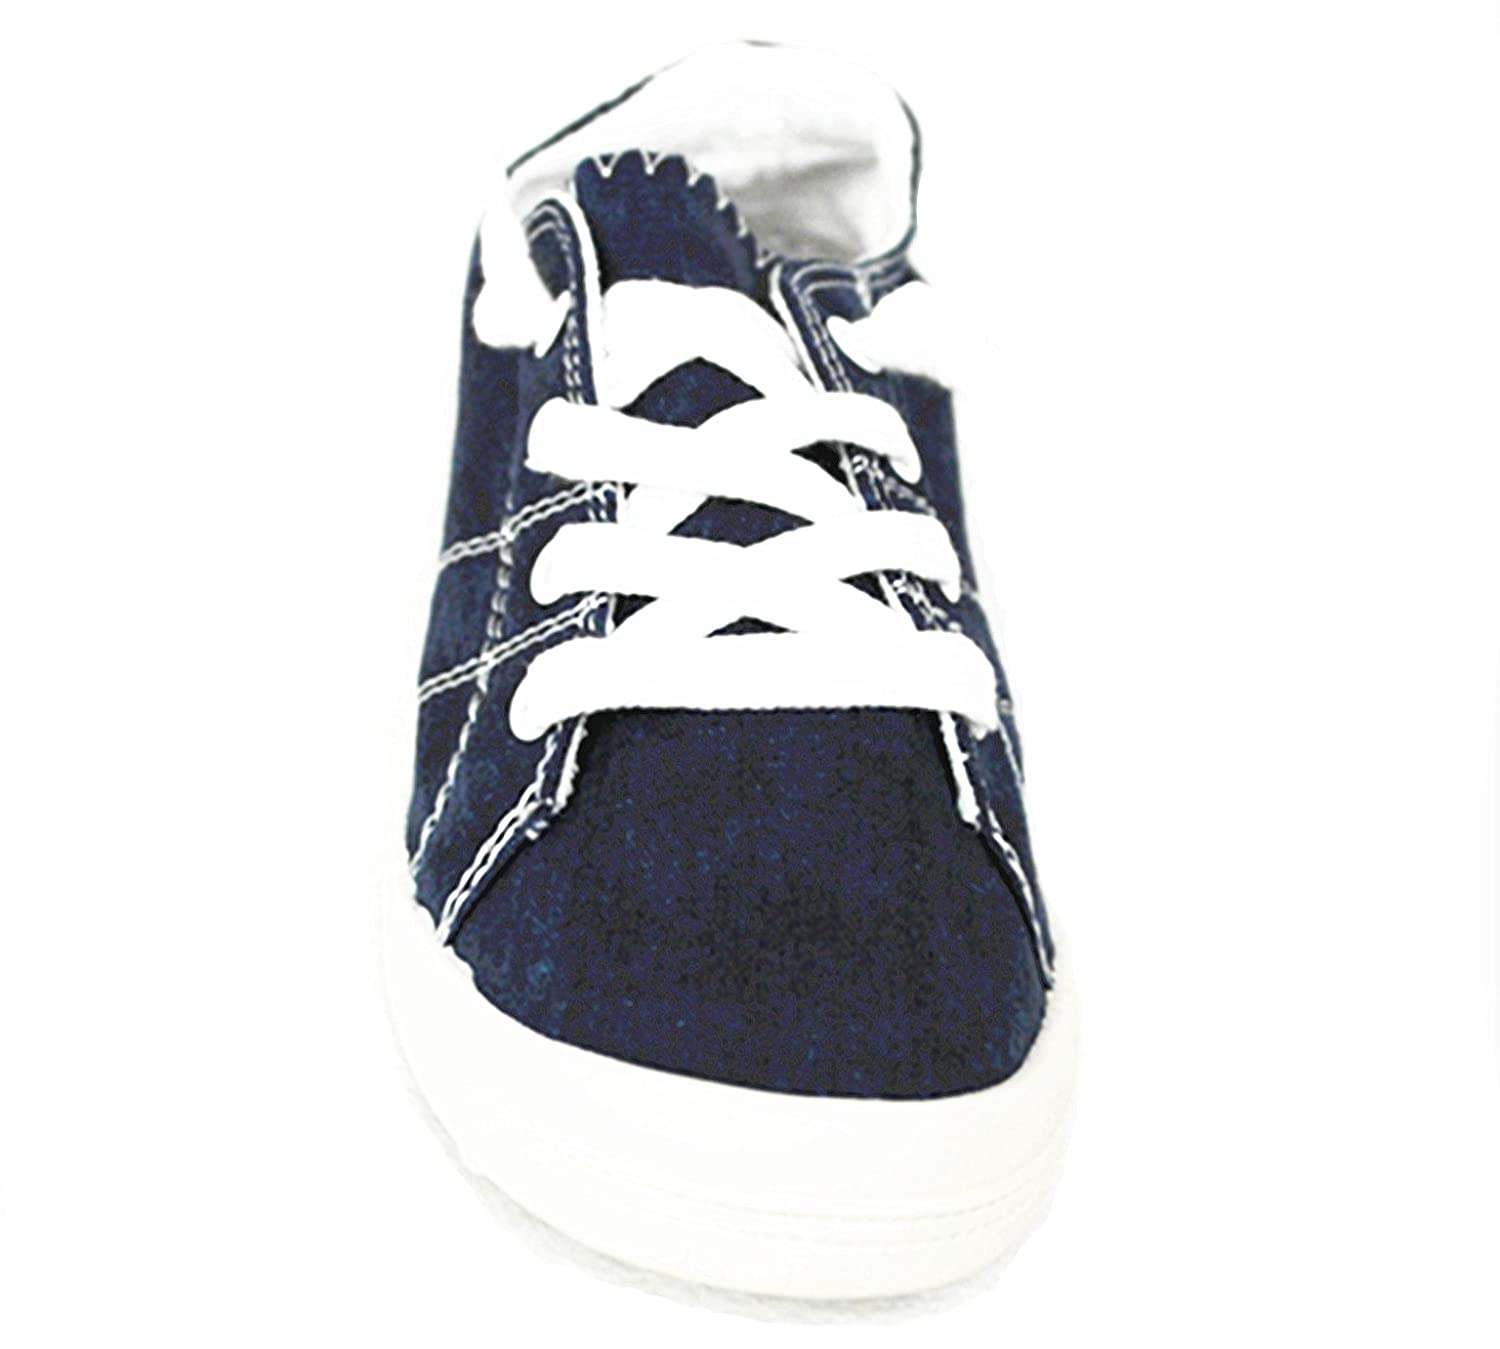 Forever Link Comfort Women's Lace up Casual Street Sneakers Flat Shoes B07D6VTK2R 10 B(M) US|Navy-01